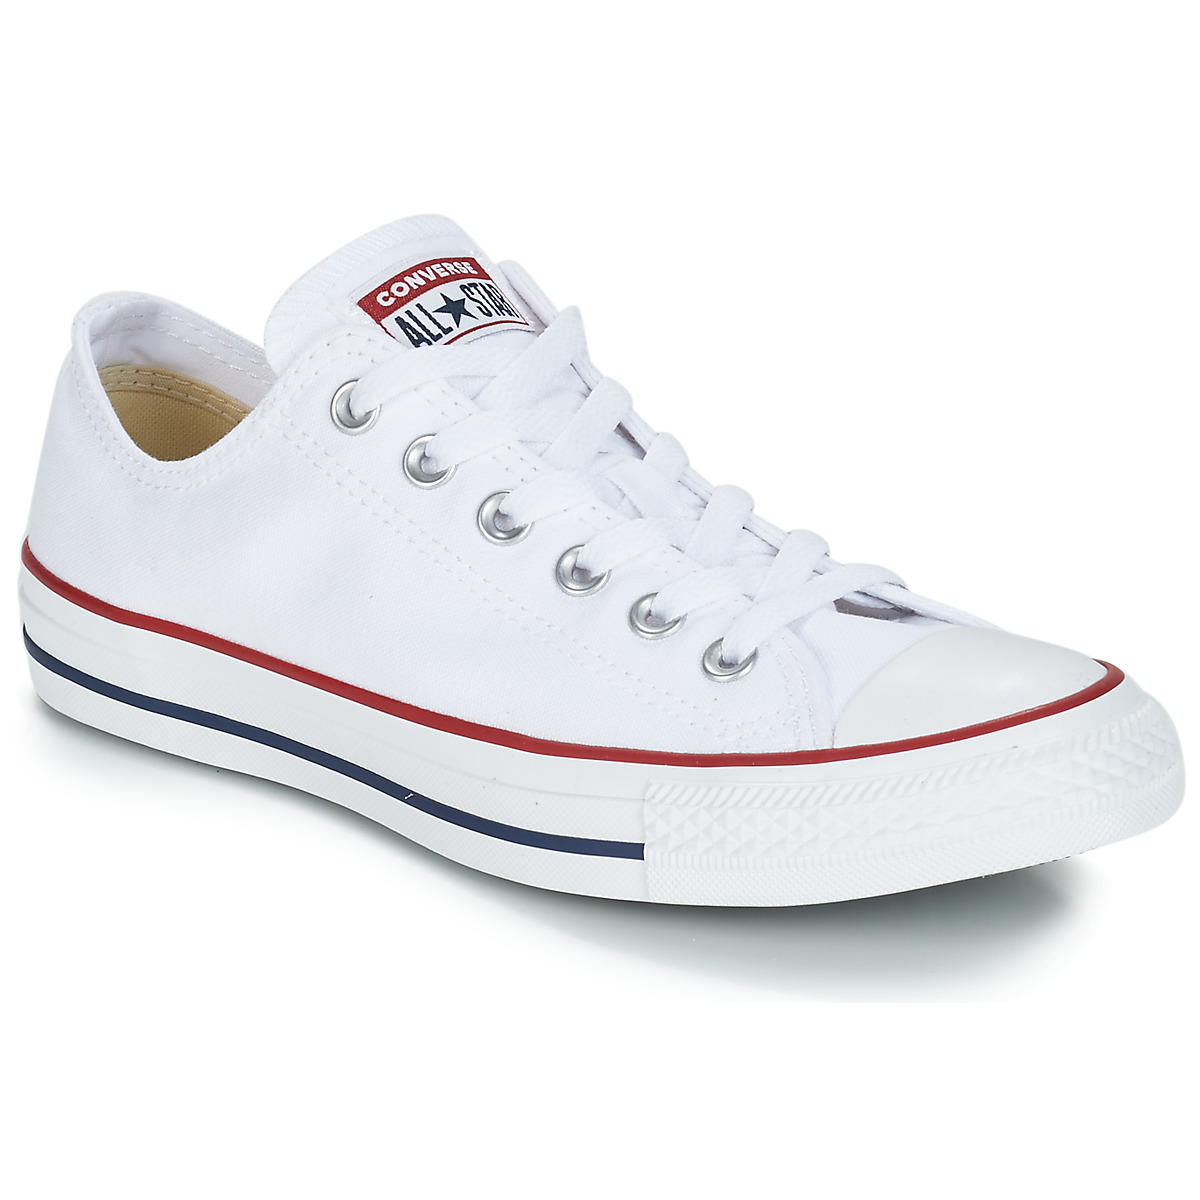 new style 804b7 c8216 Chaussures Baskets basses Converse CHUCK TAYLOR ALL STAR CORE OX Blanc  Optical